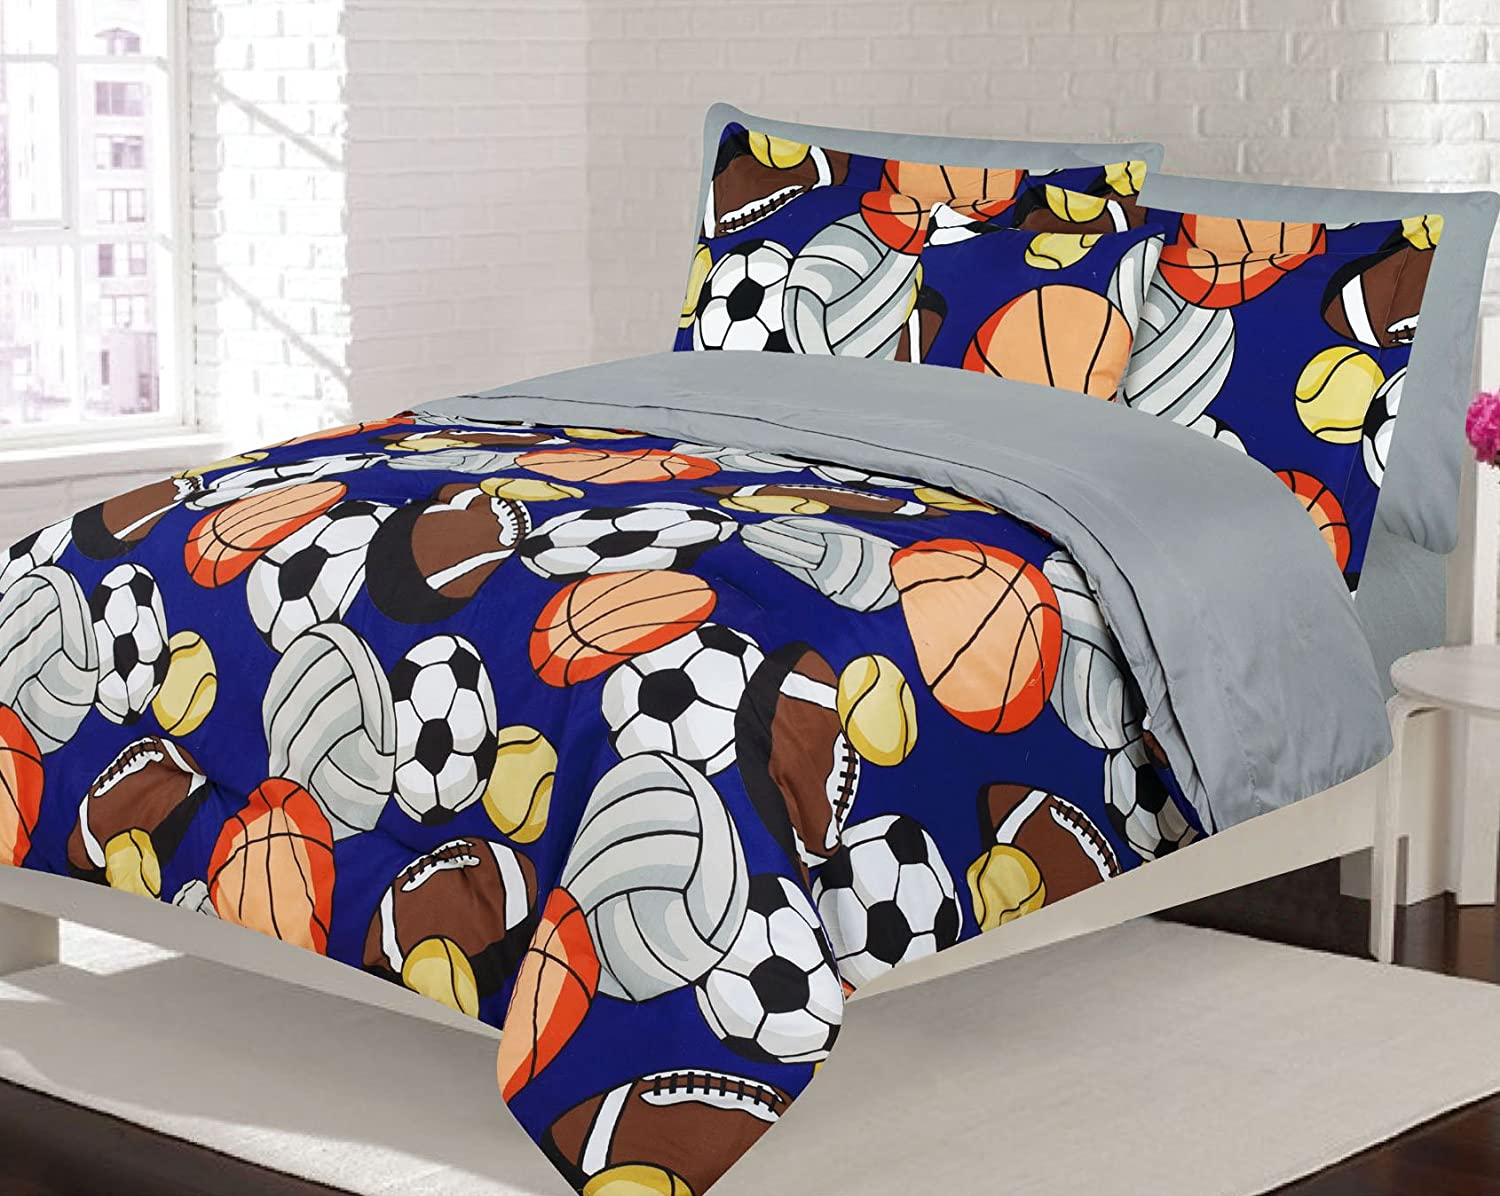 Best Beautiful Boys Bedding Sets Ease Bedding With Style - Boys sports bedding sets twin